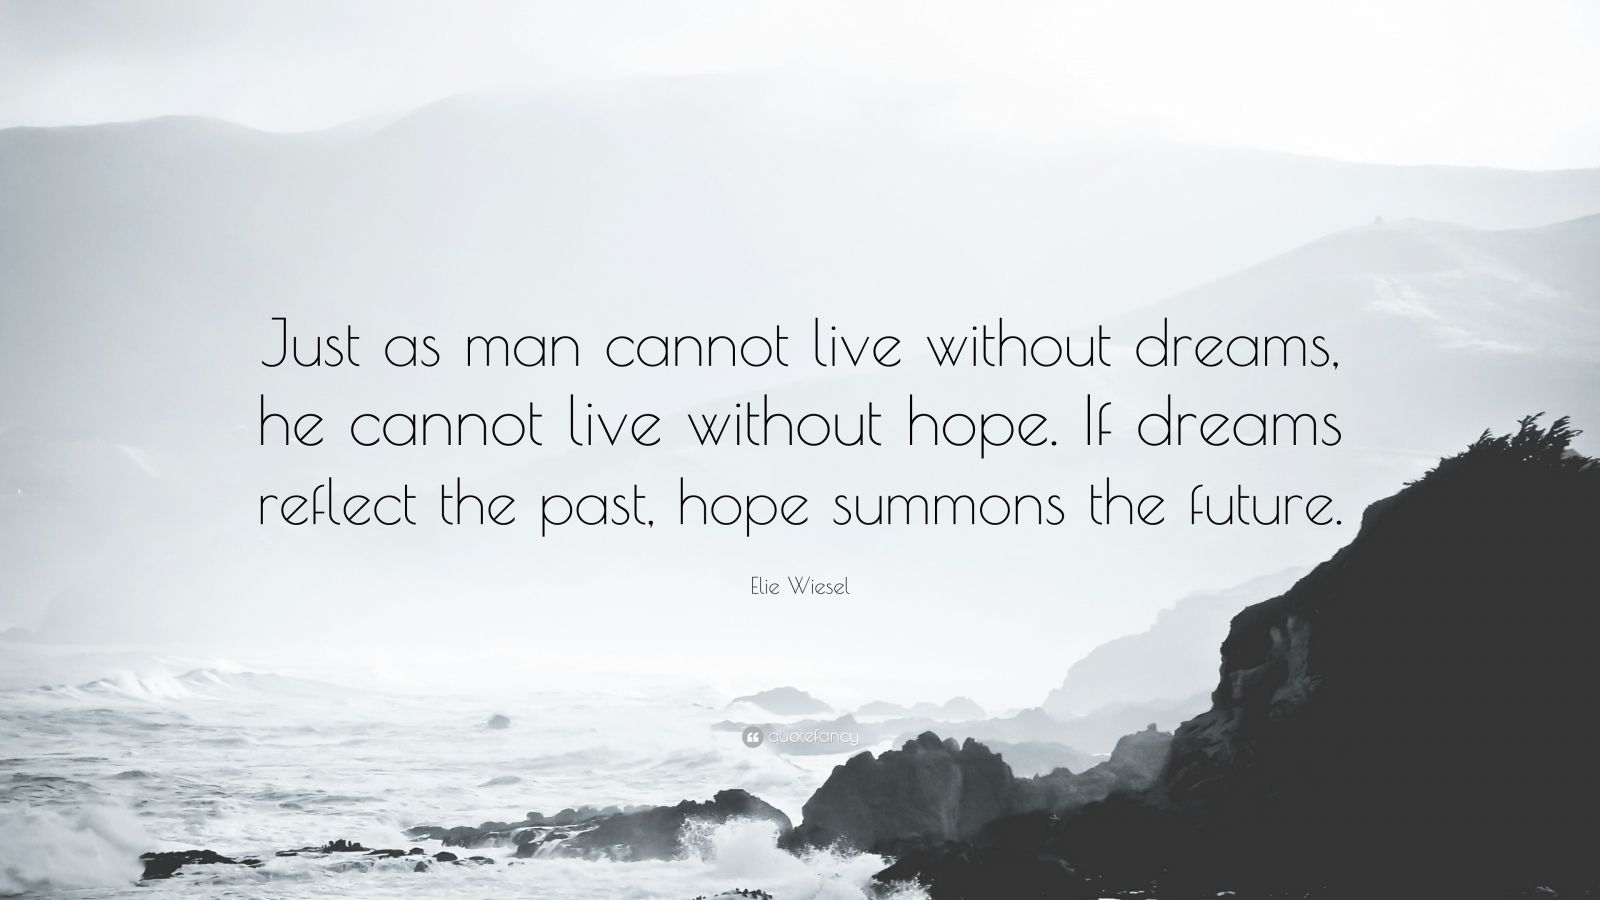 """Elie Wiesel Quote: """"Just as man cannot live without dreams, he cannot live without hope. If dreams reflect the past, hope summons the future."""""""